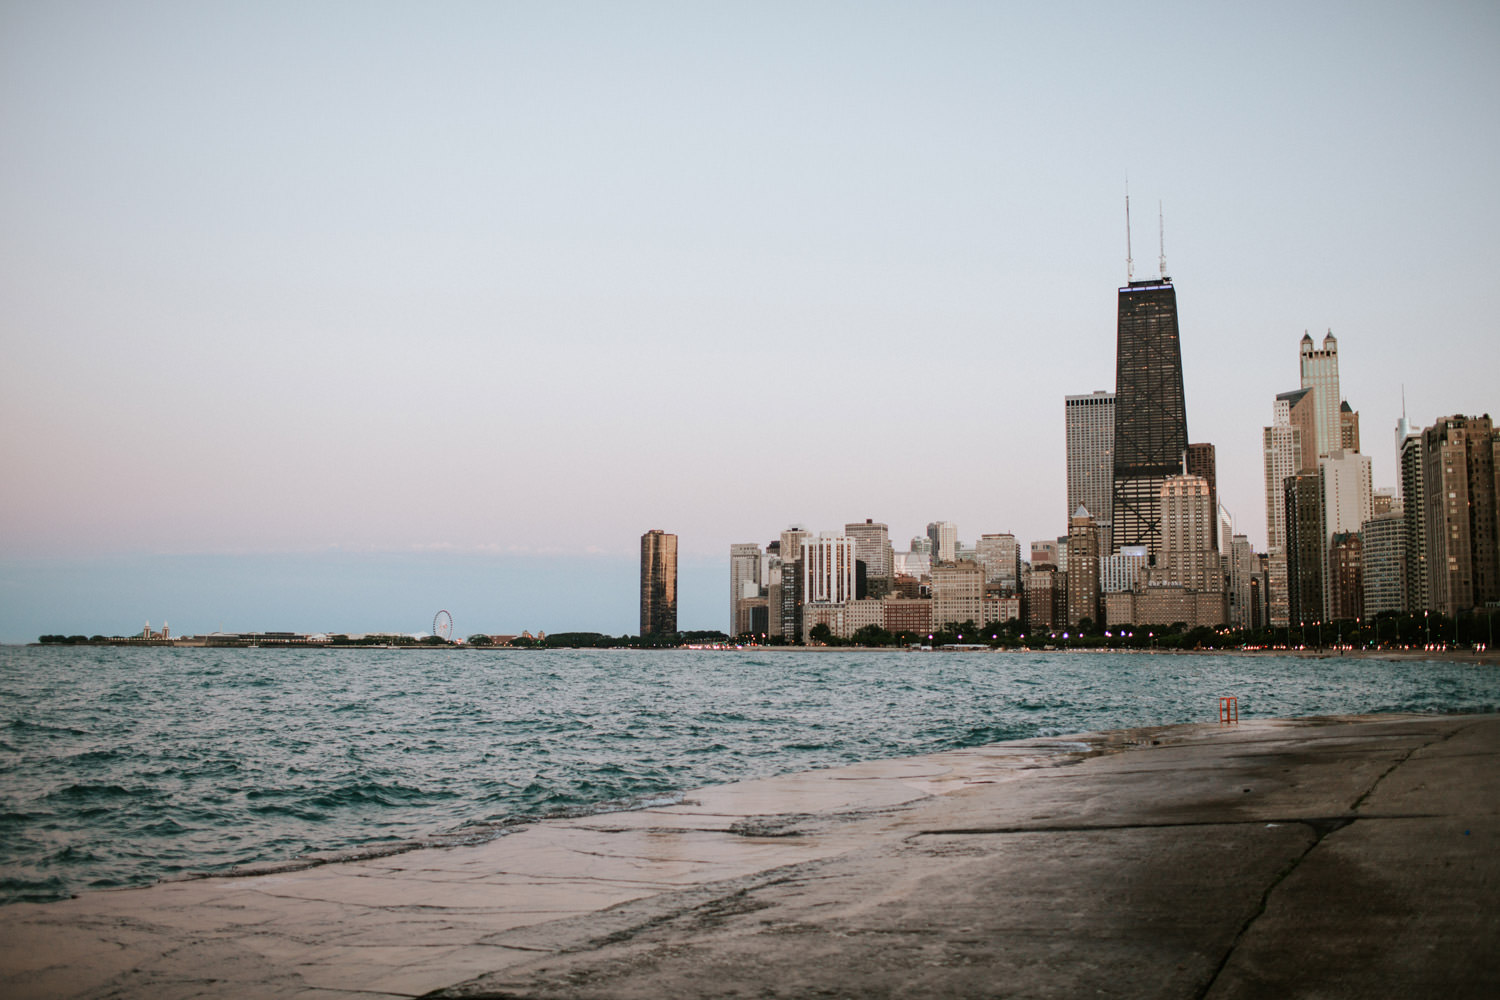 View from North Avenue beach in Chicago taken during sunset